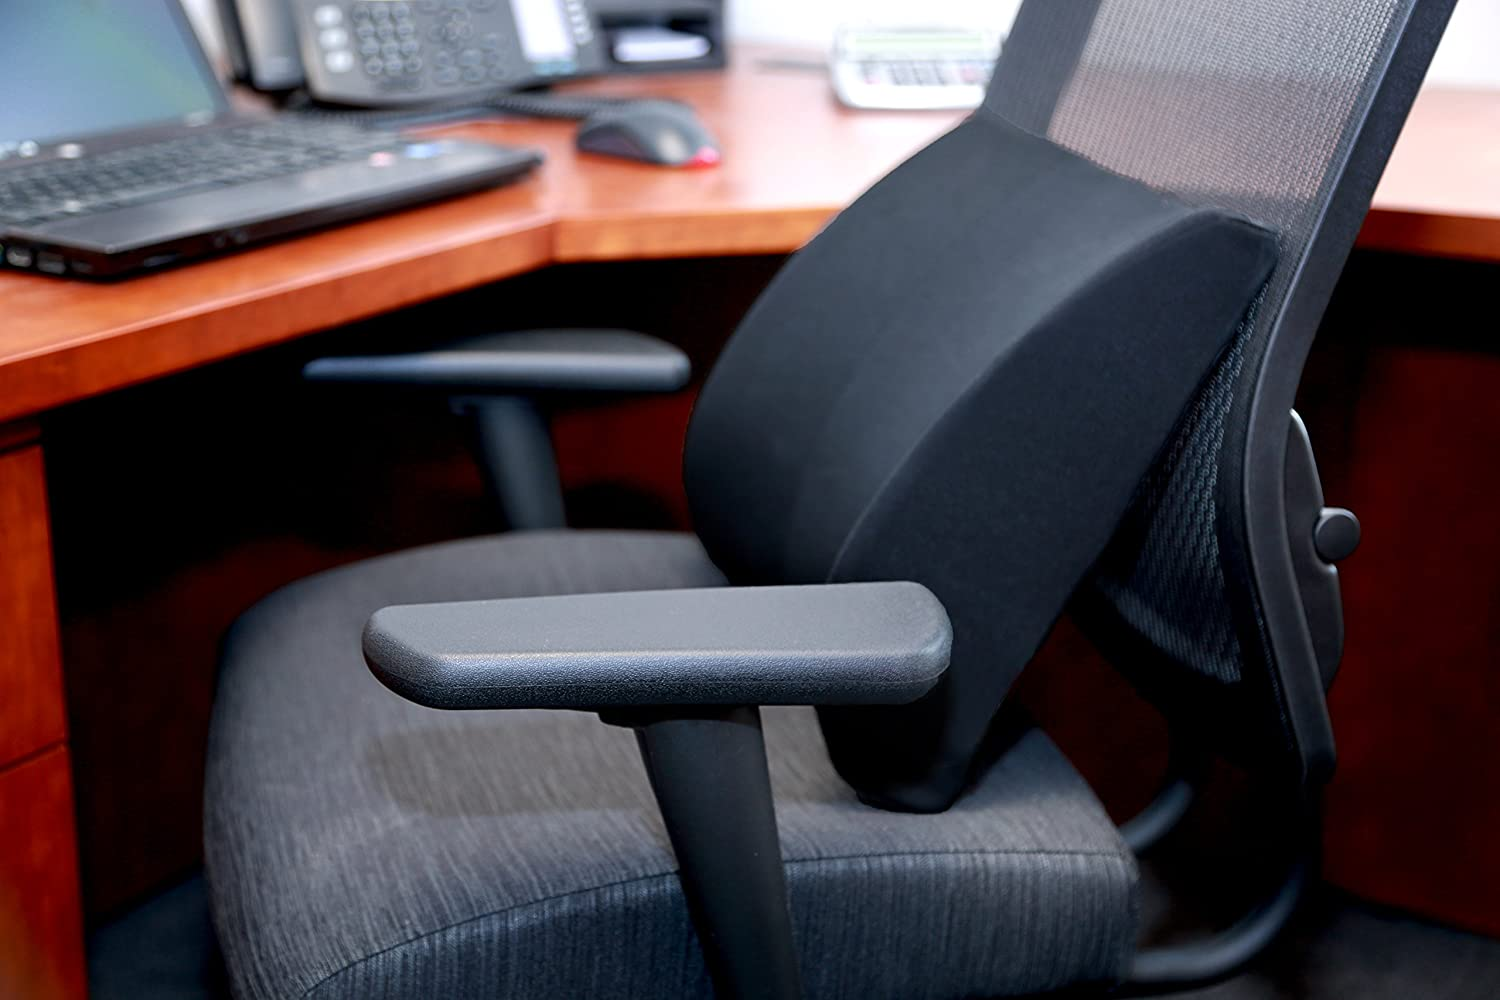 Amazon.com: Lumbar Back Support for Office Chair - Chair Back ...